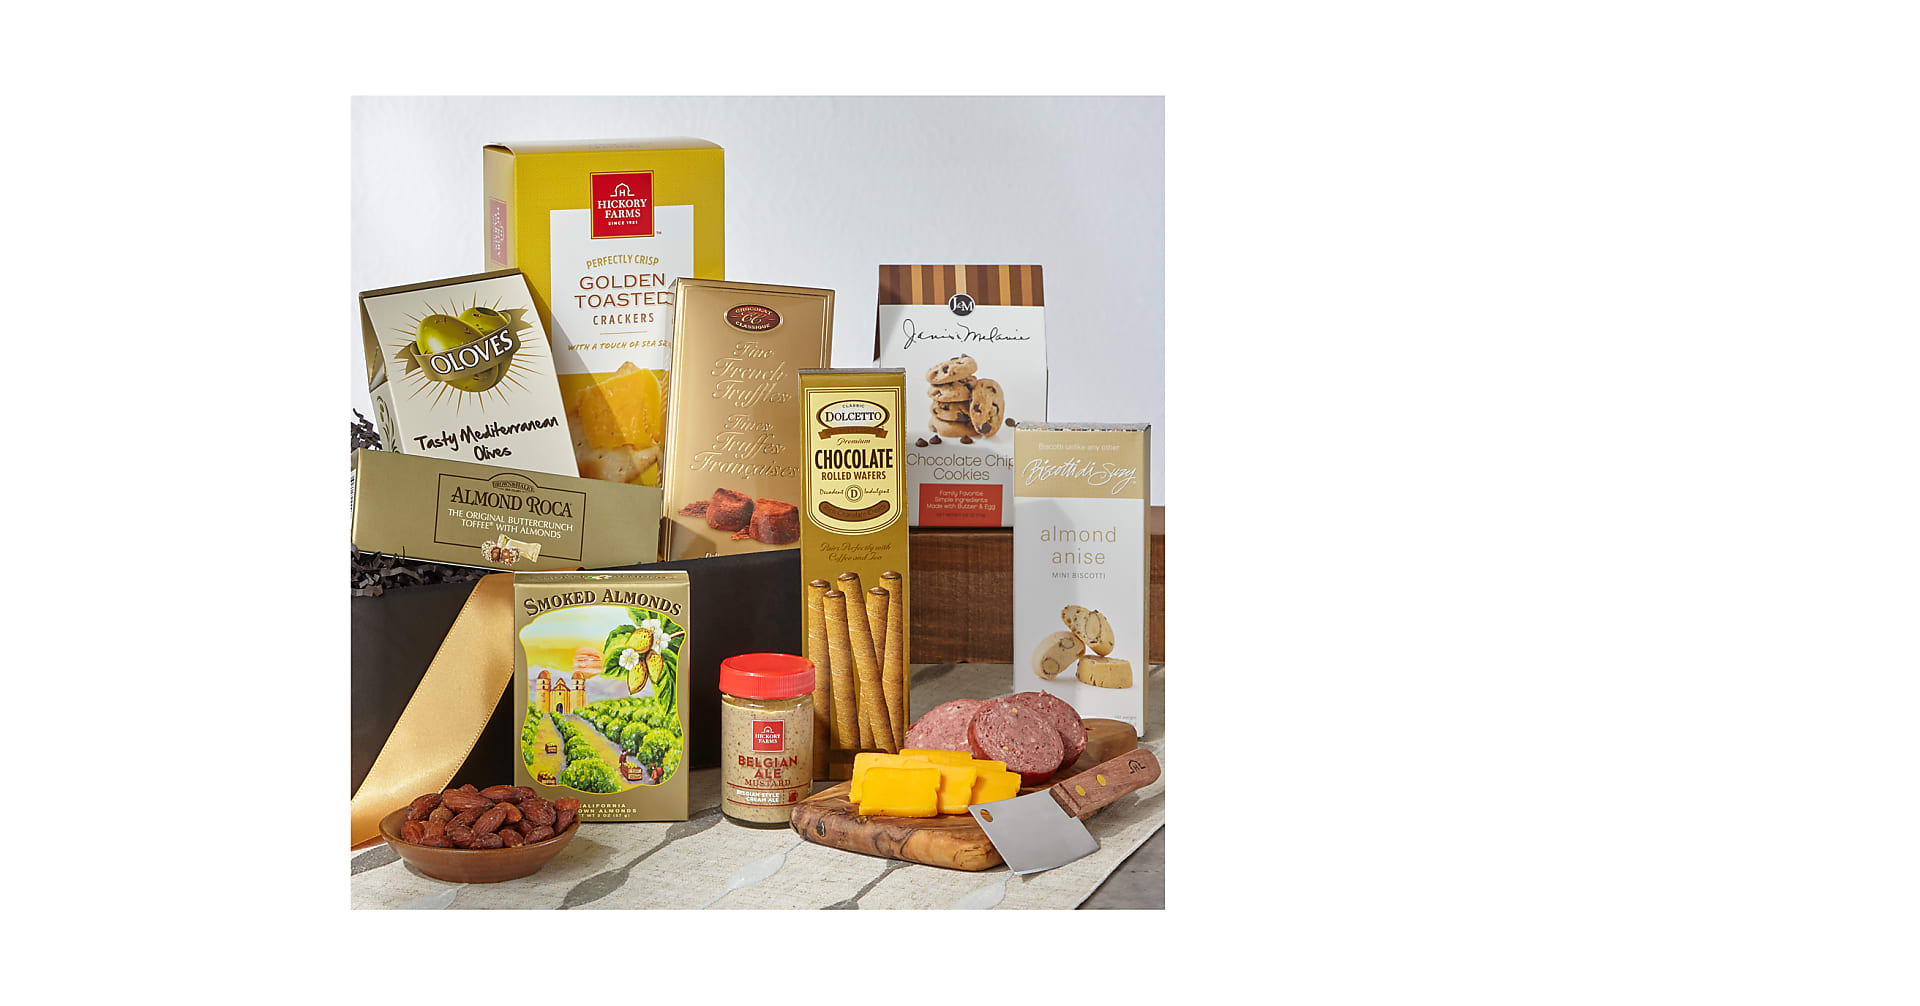 Classic Gourmet Salami and Cheese Box - Image 1 Of 3